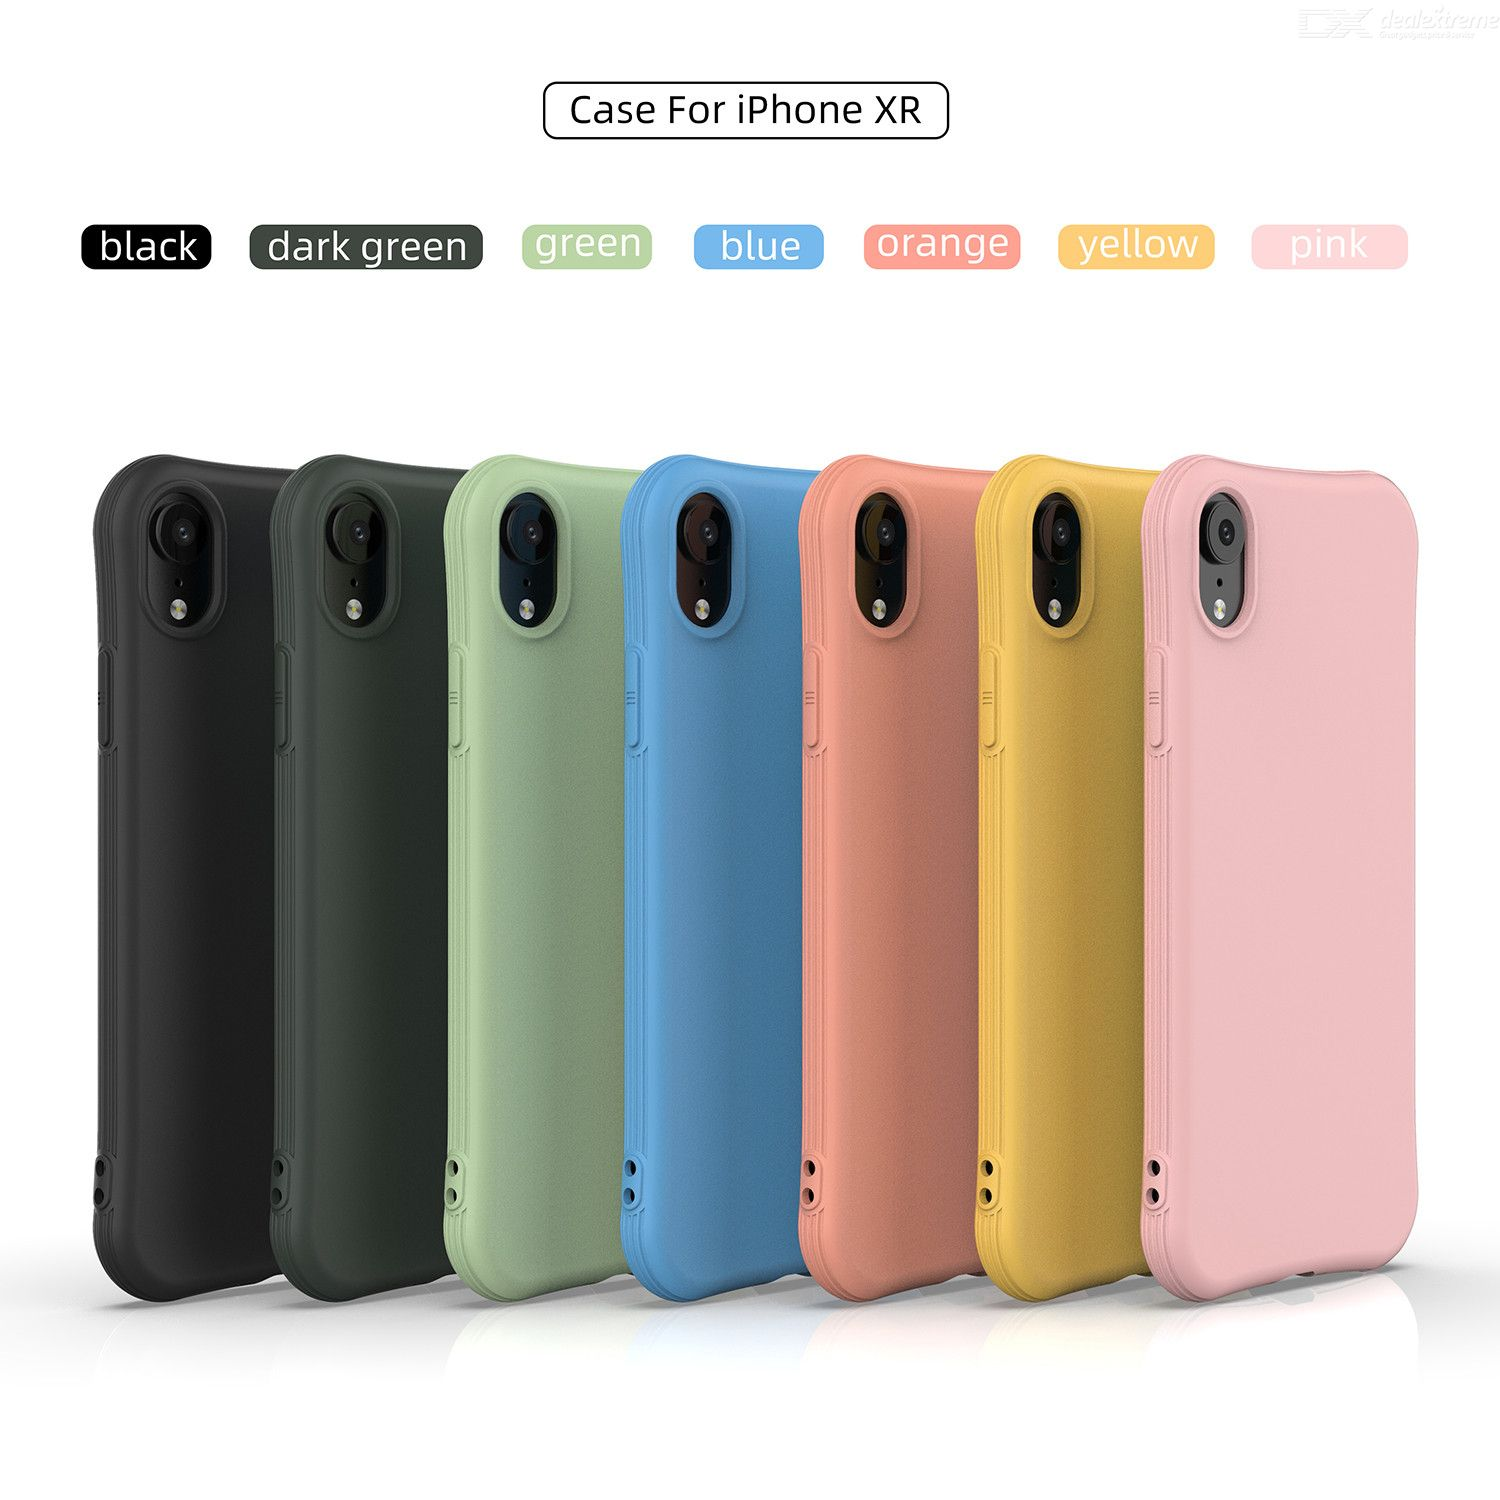 ENKAY ENK-PC004 Solid Color TPU Slim Case Cover For iPhone XR